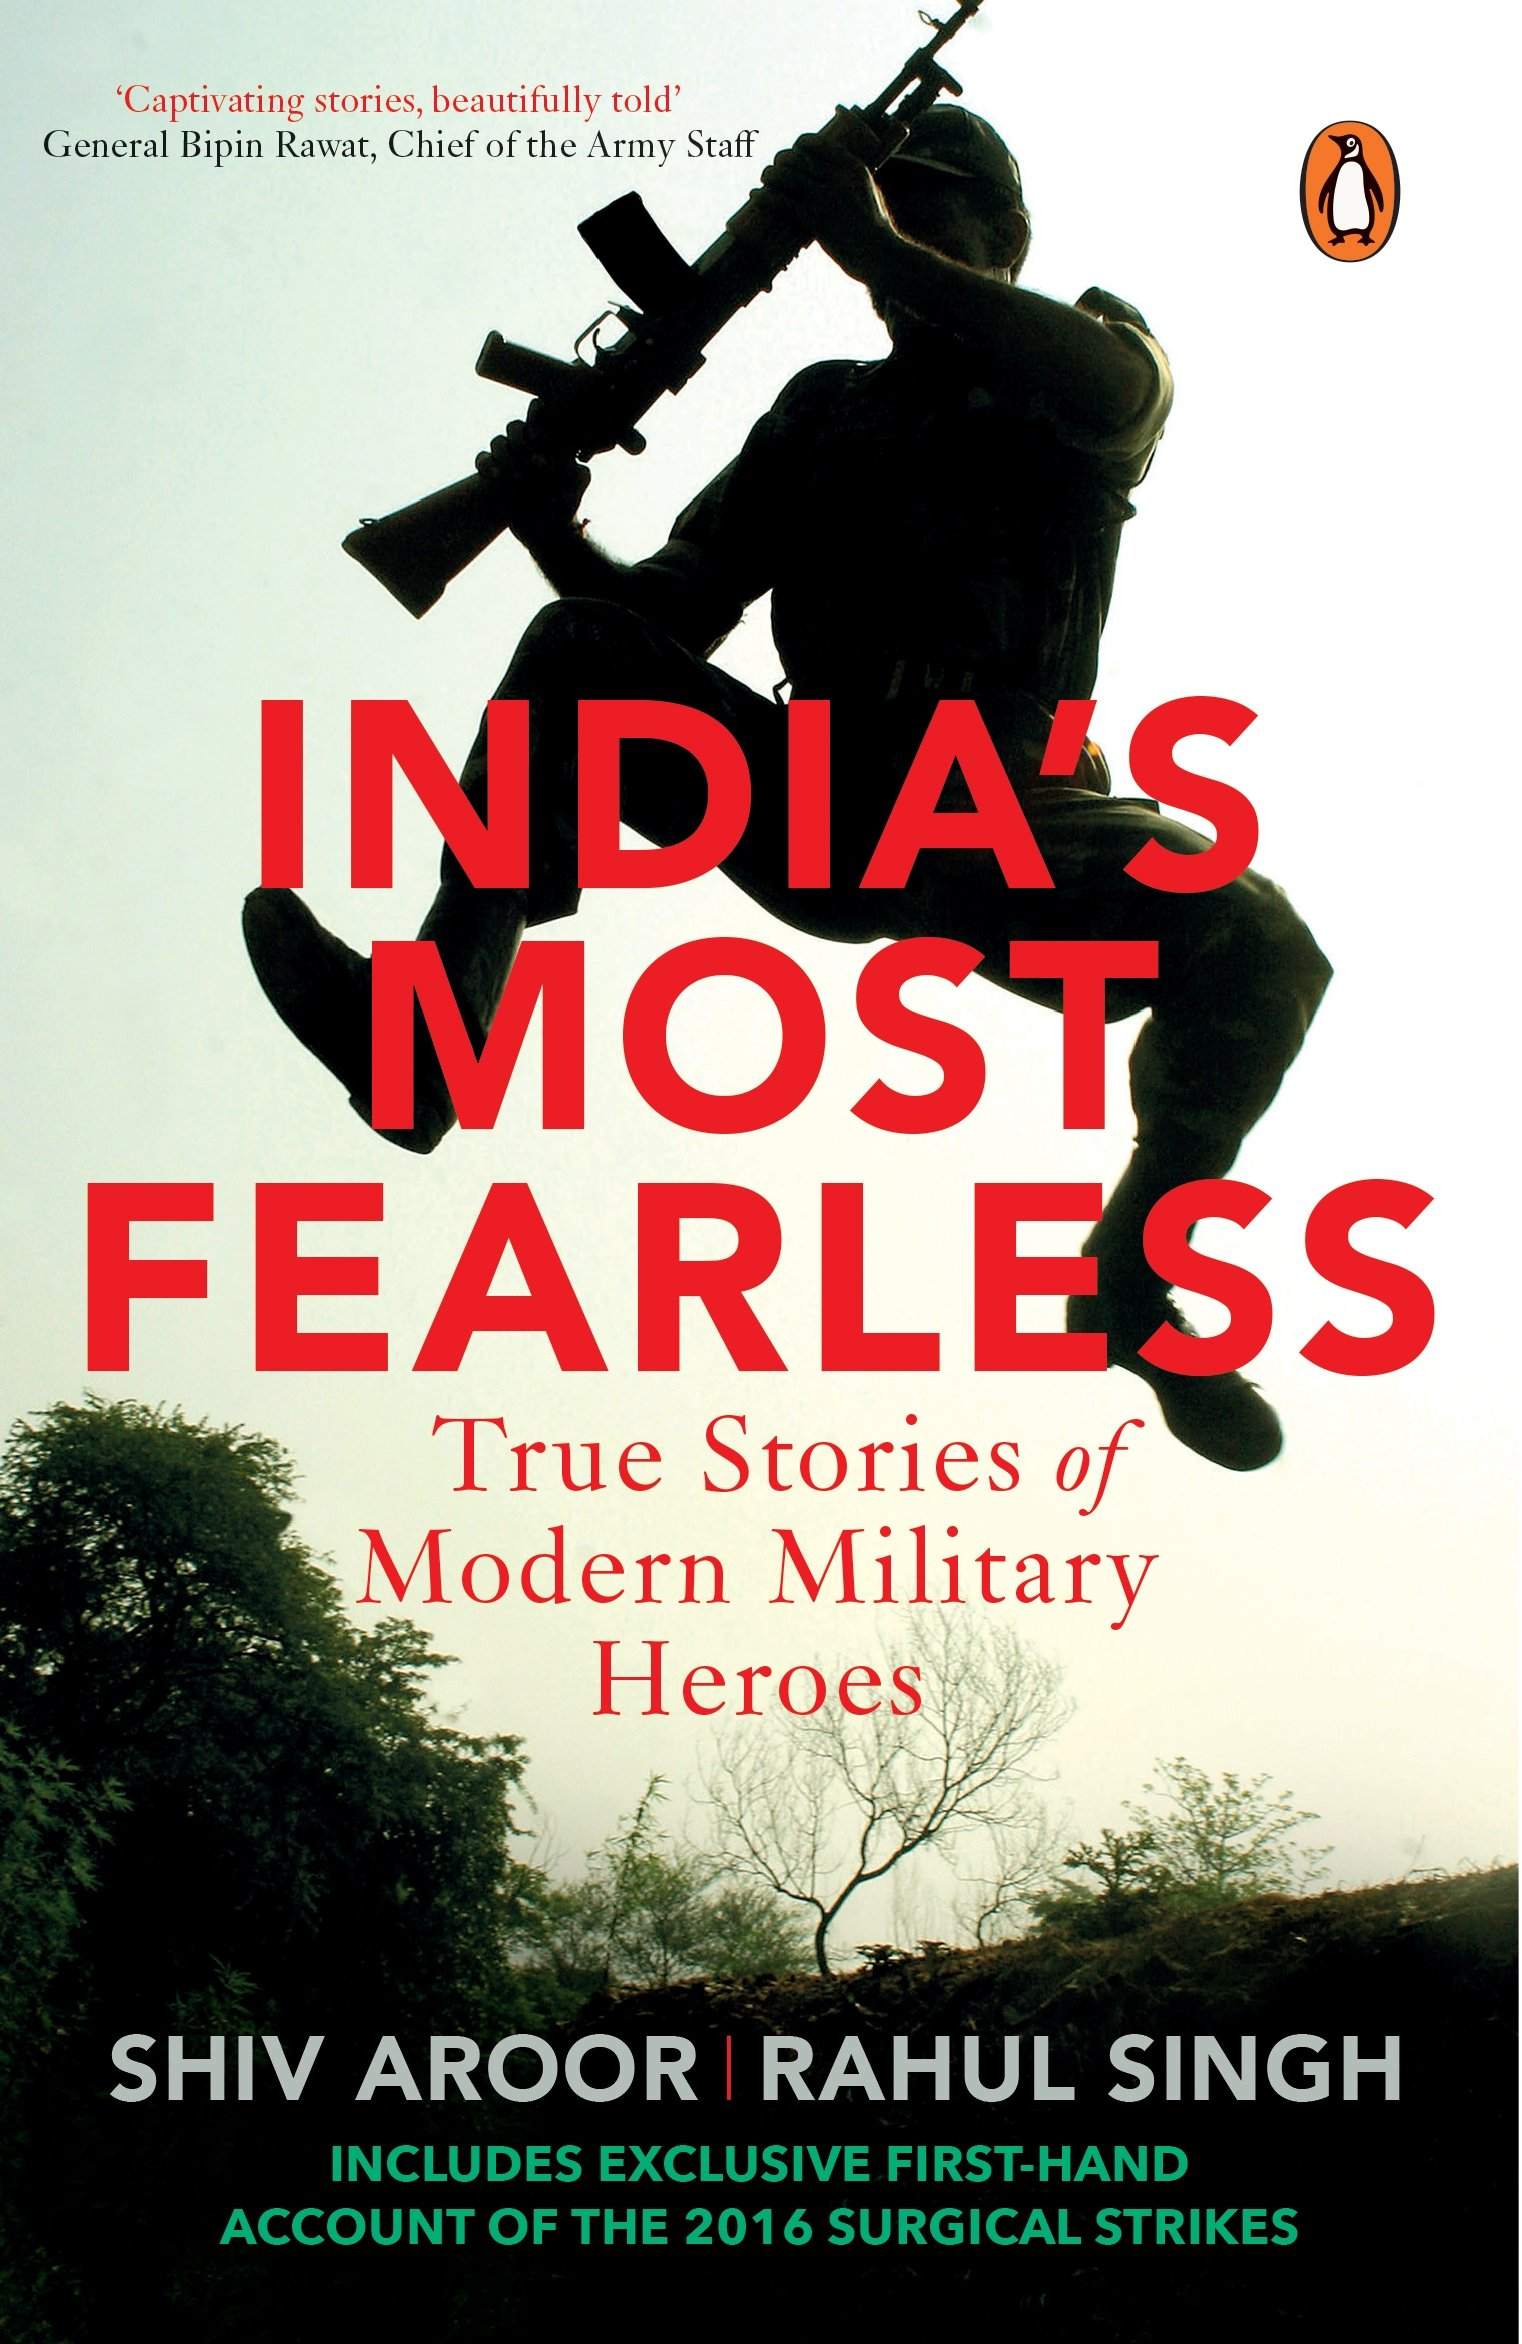 Buy India's Most Fearless: True Stories of Modern Military Heroes